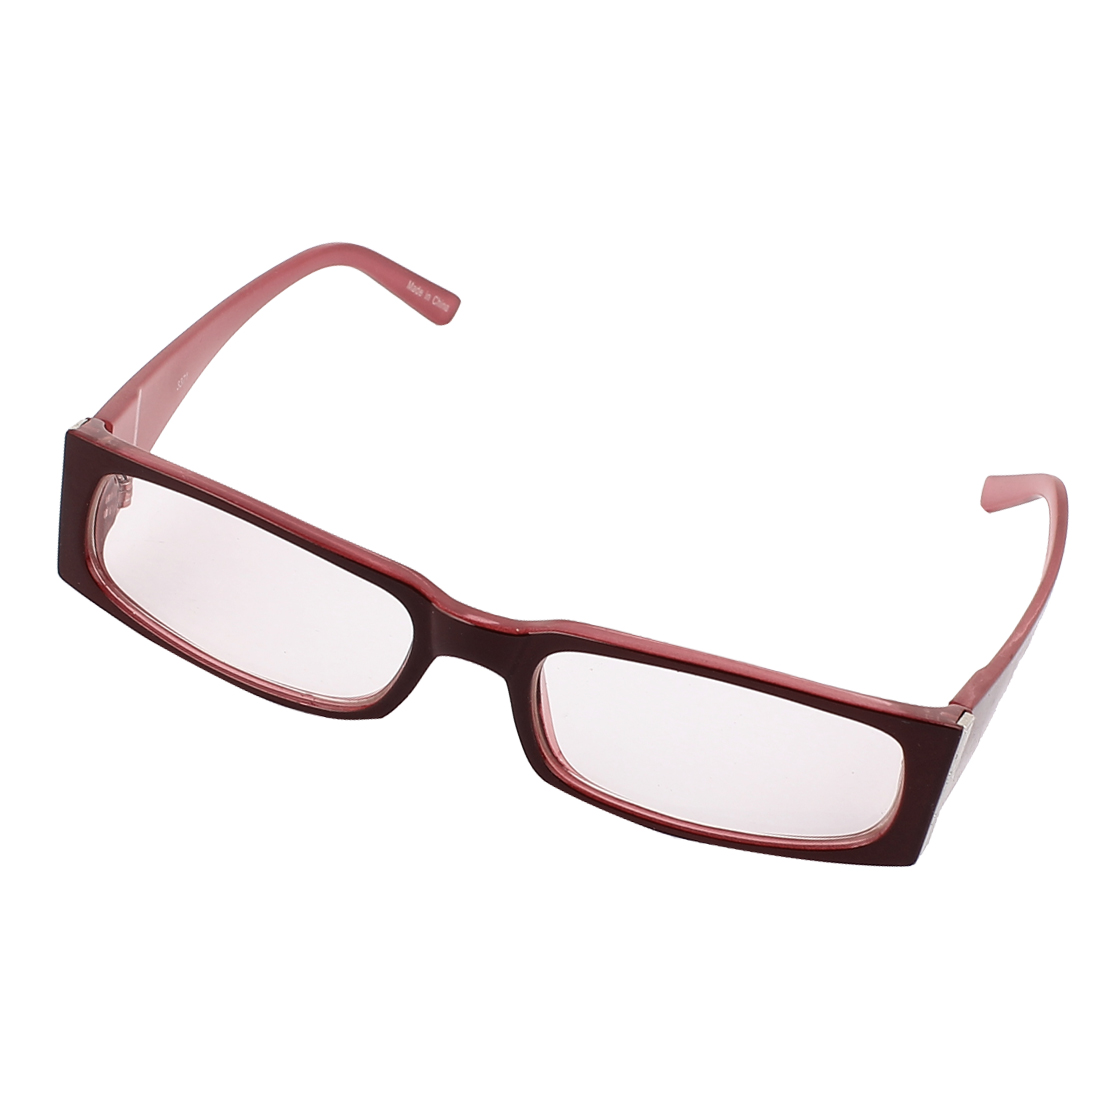 Women Full Rim Square Frame Spectacles Outdoor Eyeglasses Eyewear